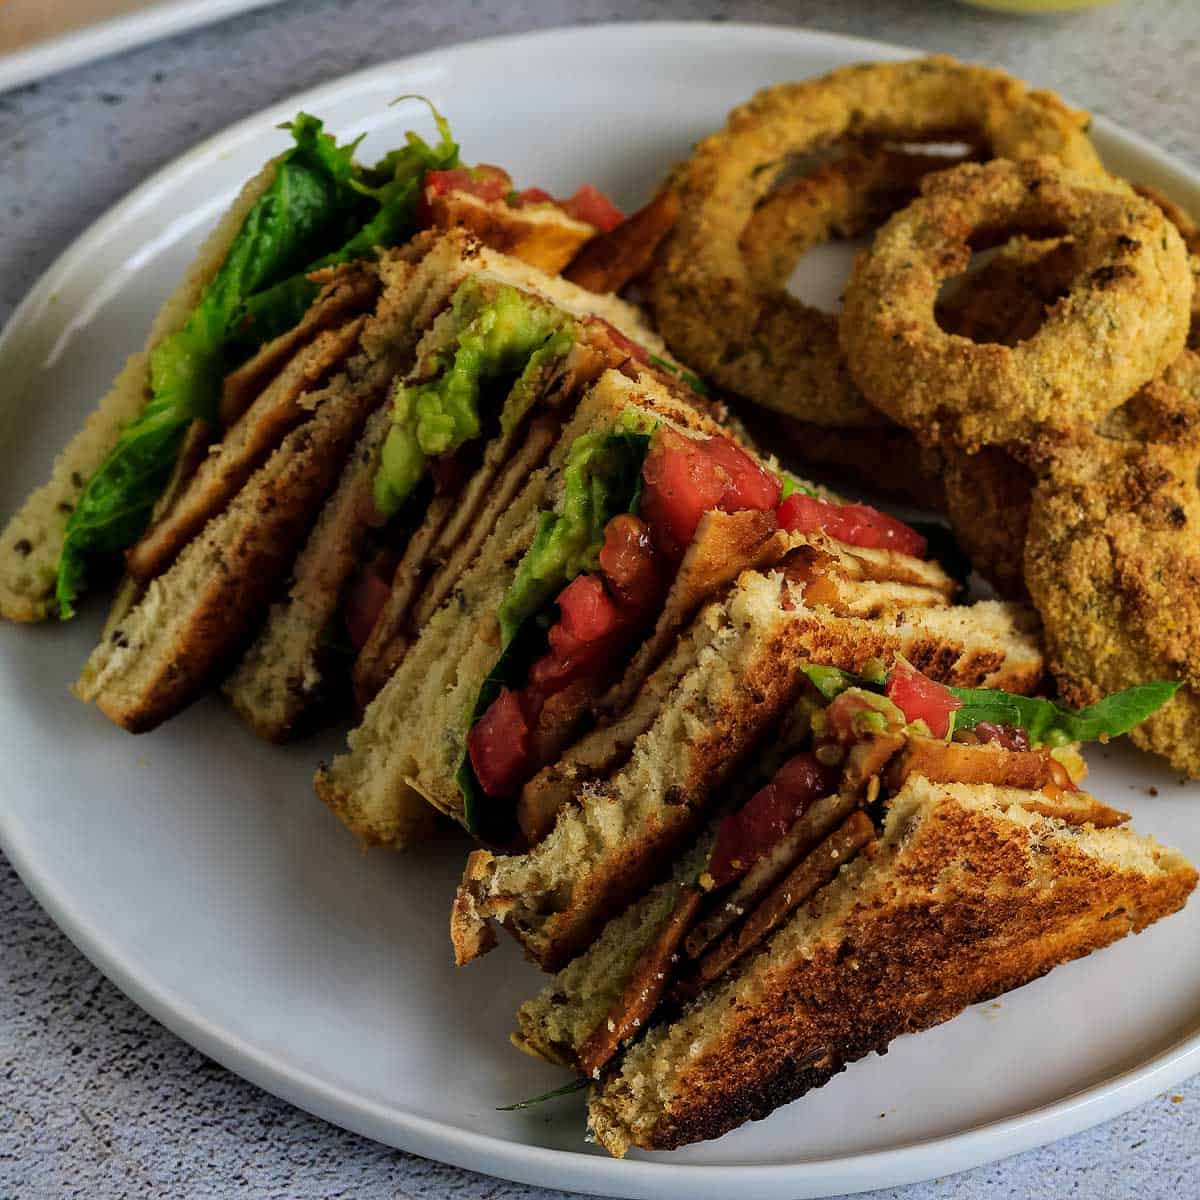 Vegan blt sandwich served up on white plate with onion rings.